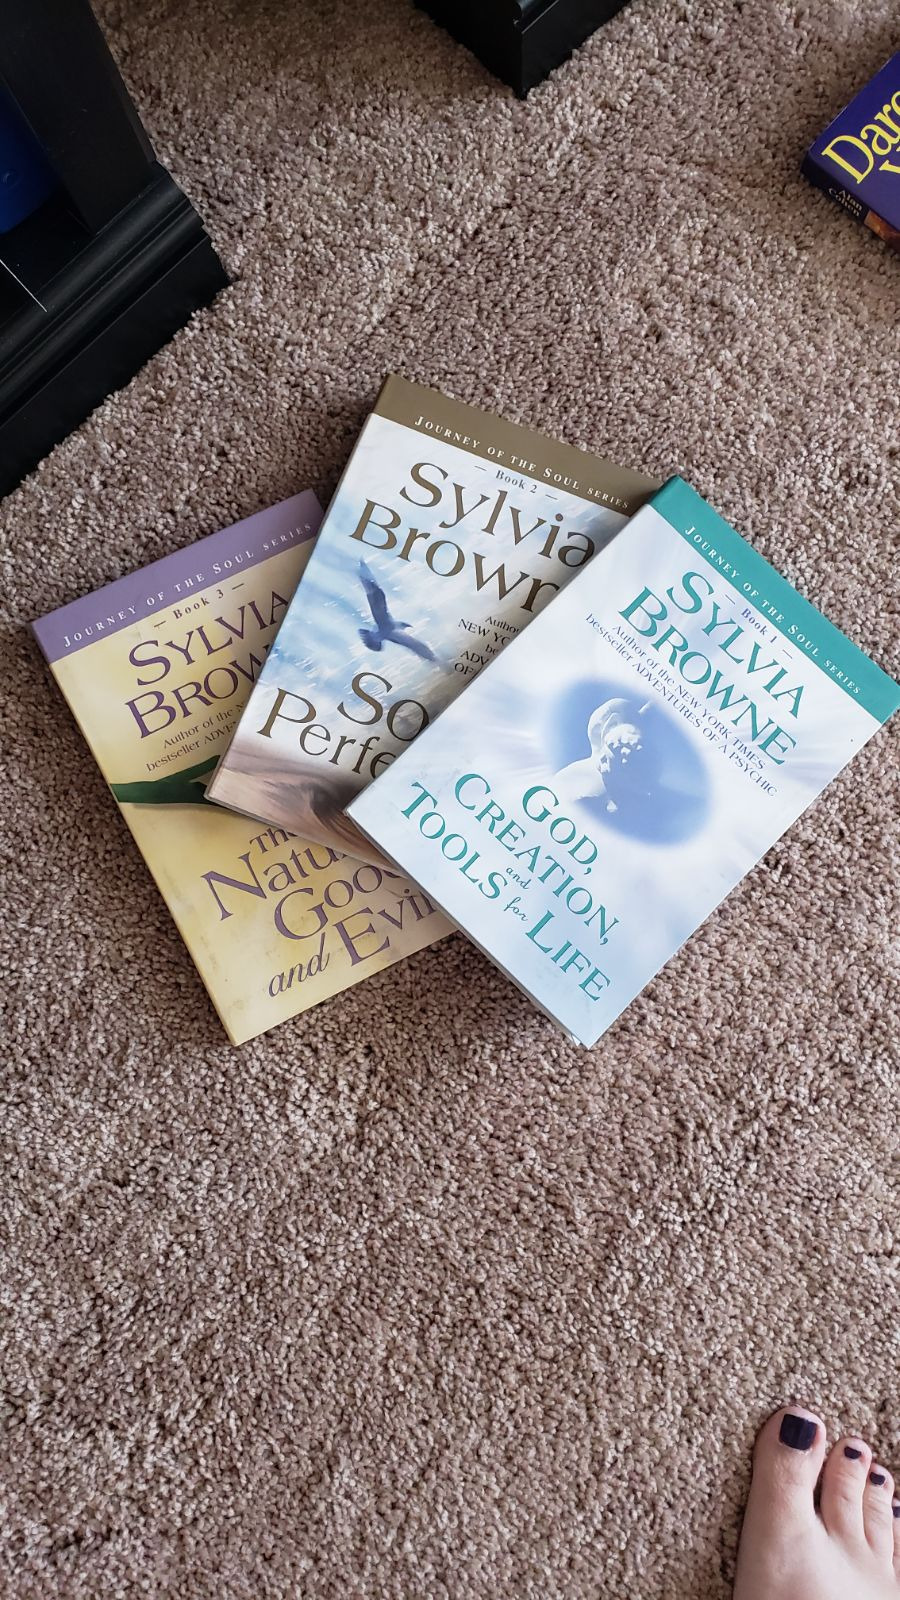 Bundle and save. Silvia brown 3 book ser